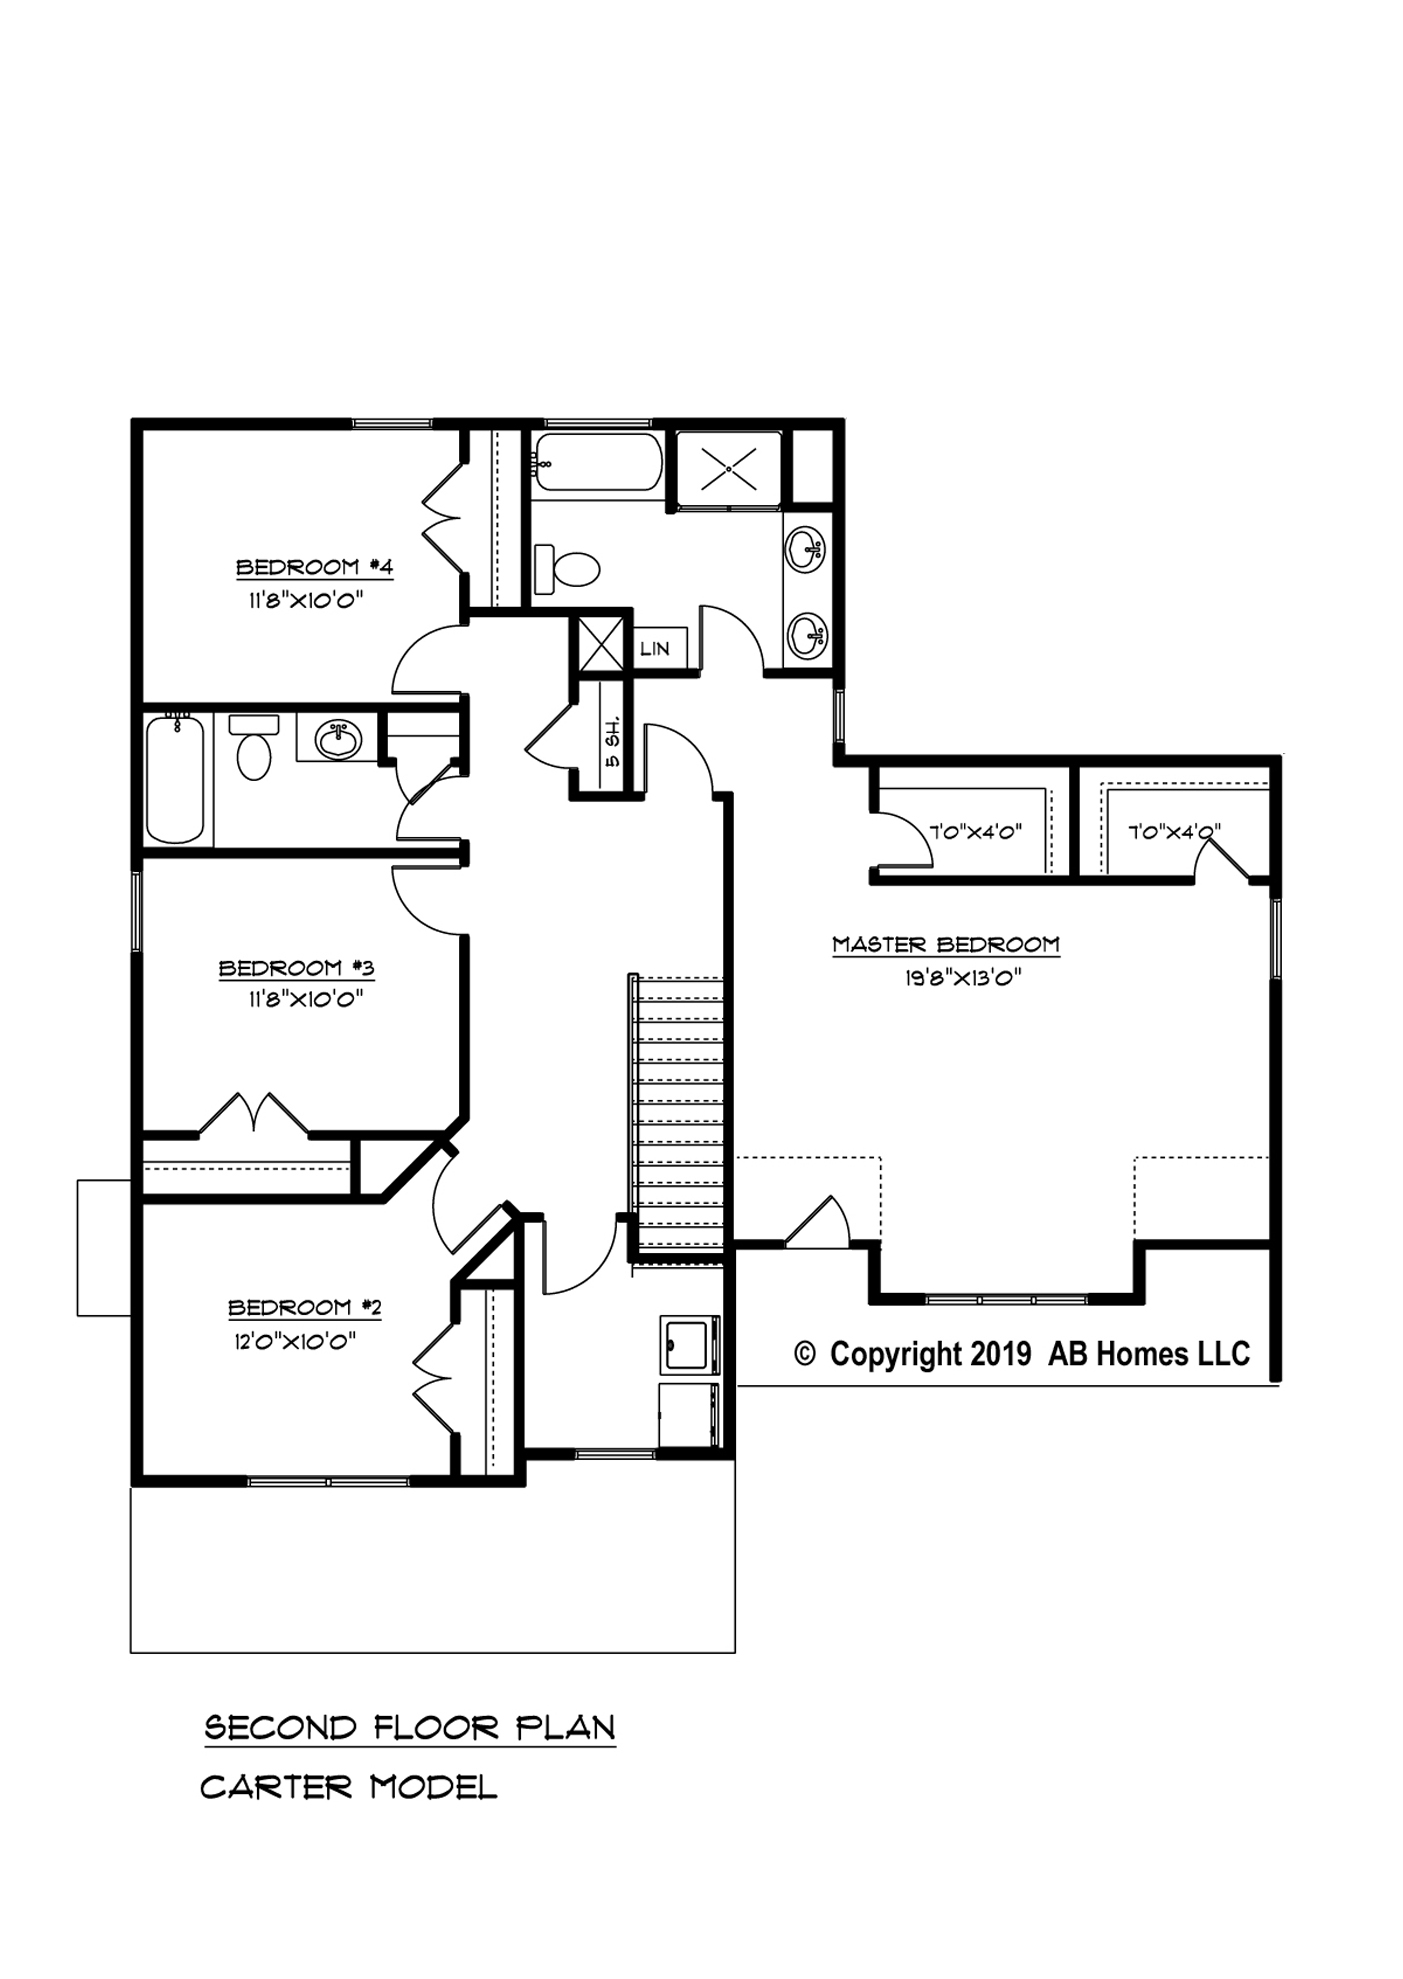 AB Homes The Carter Floor Plan new home builder 2nd floor